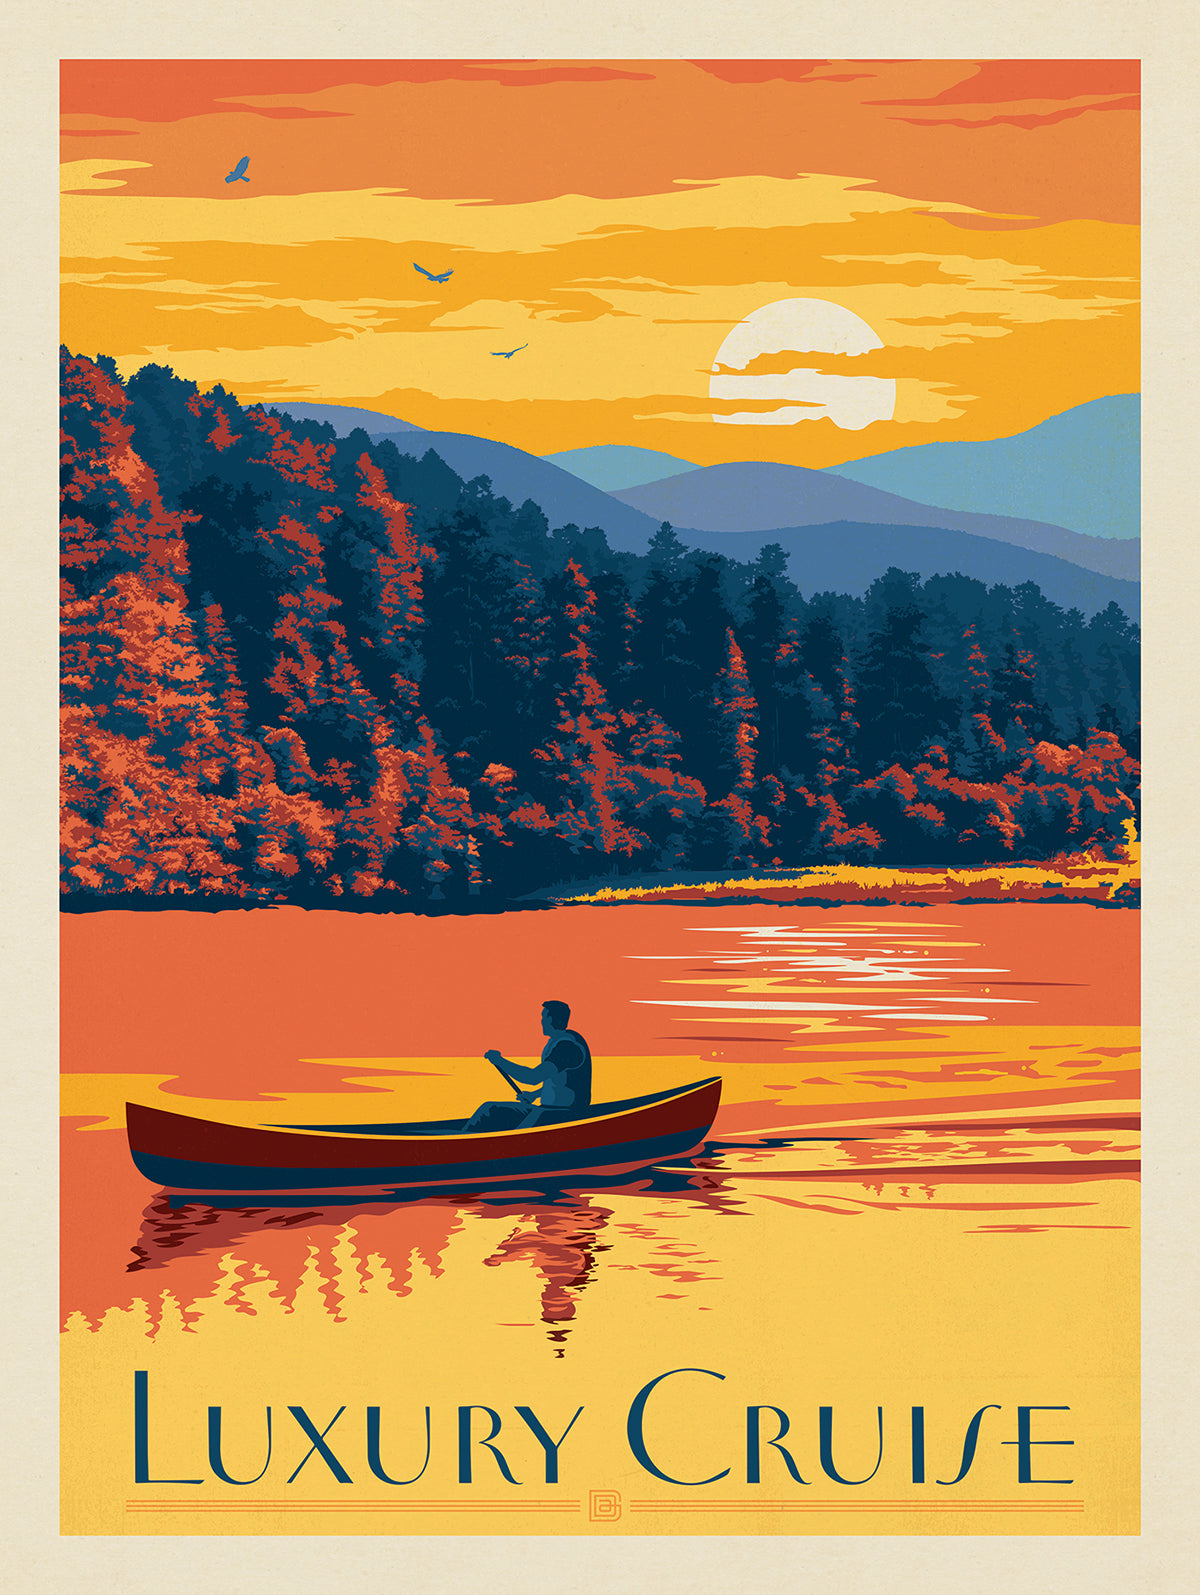 Remembering the Good Times at the Lake with Vintage Poster Art